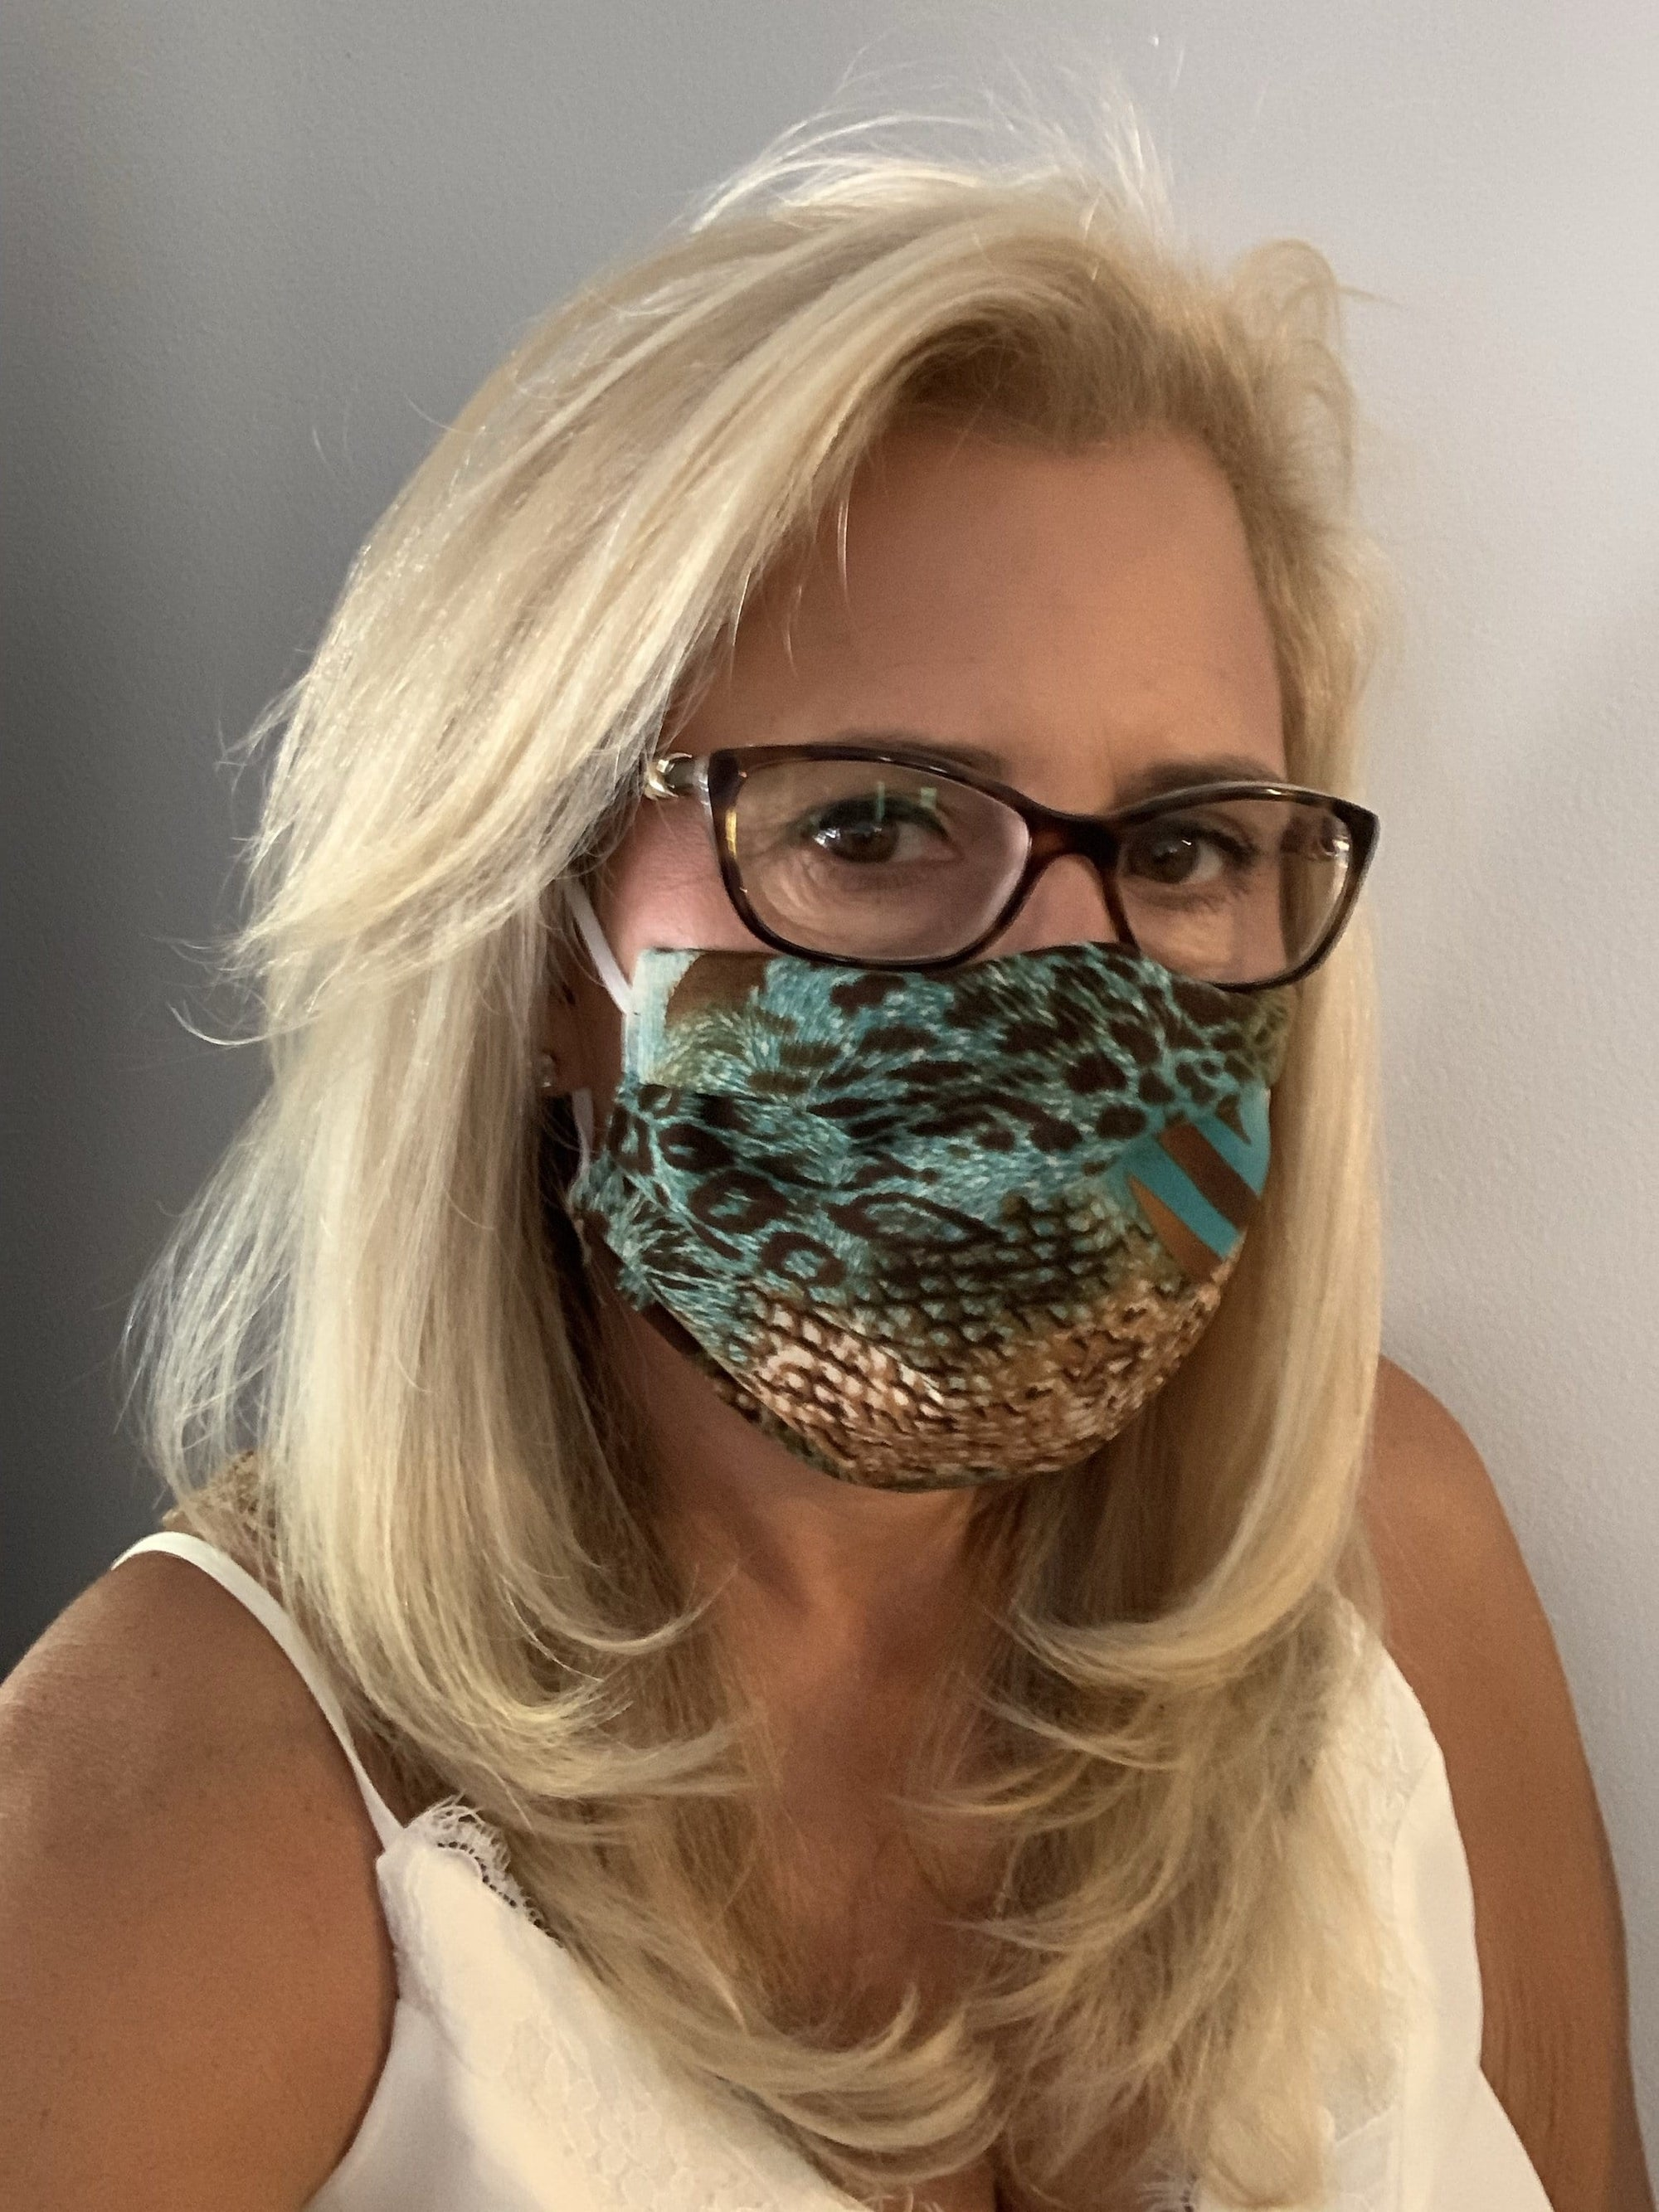 Stacy Bradley Design Face Mask Teal Leopard equestrian team apparel online tack store mobile tack store custom farm apparel custom show stable clothing equestrian lifestyle horse show clothing riding clothes horses equestrian tack store